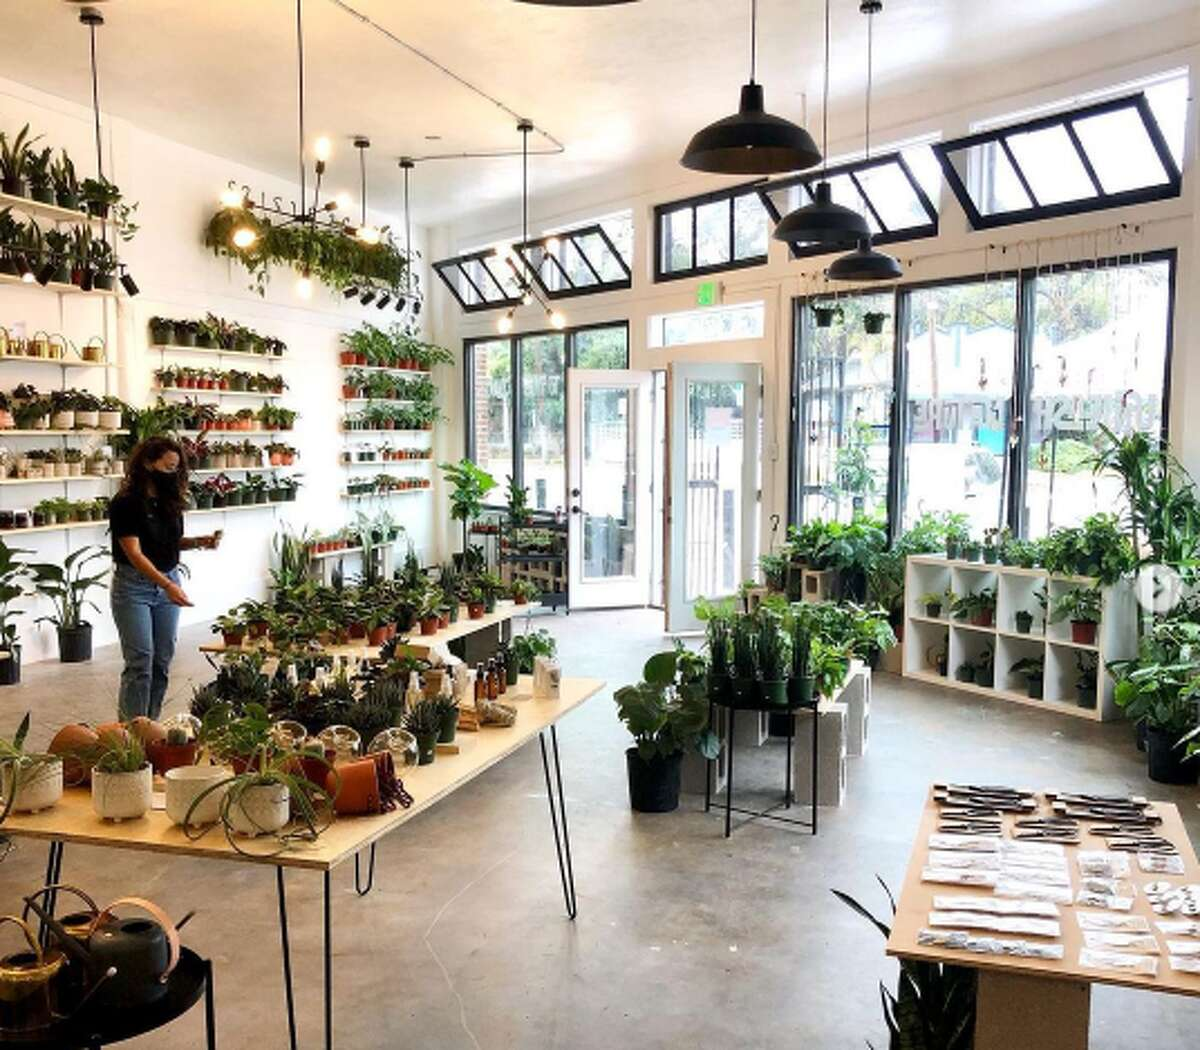 For years, Aditya has been collecting rare house plants like alocasia silver dragon and philodendron Micans, often traveling to other cities and states to find her plants. After realizing other locals might share the same difficulties, Aditya launched Plant Shoppe - a nursery where you can find specialty plants, like tropical, rainforest plants, that are grown in ethical and sustainable greenhouses.